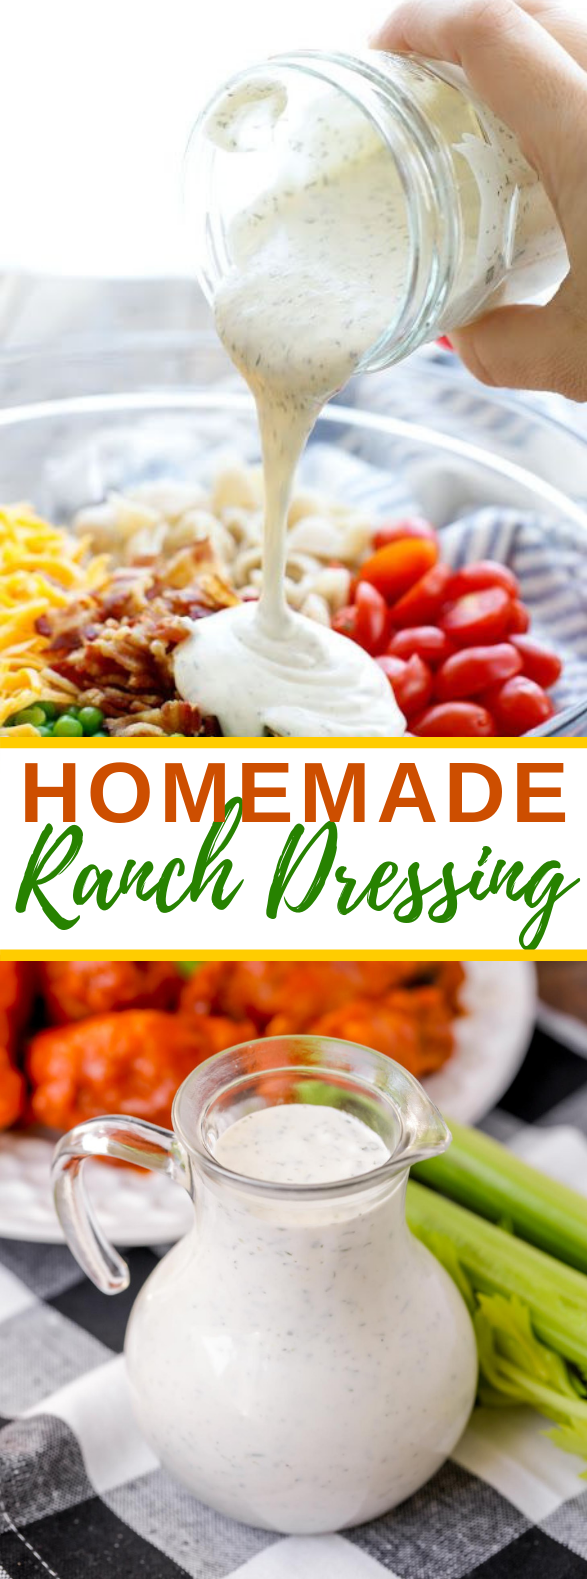 HOMEMADE RANCH DRESSING #veggies #appetizers